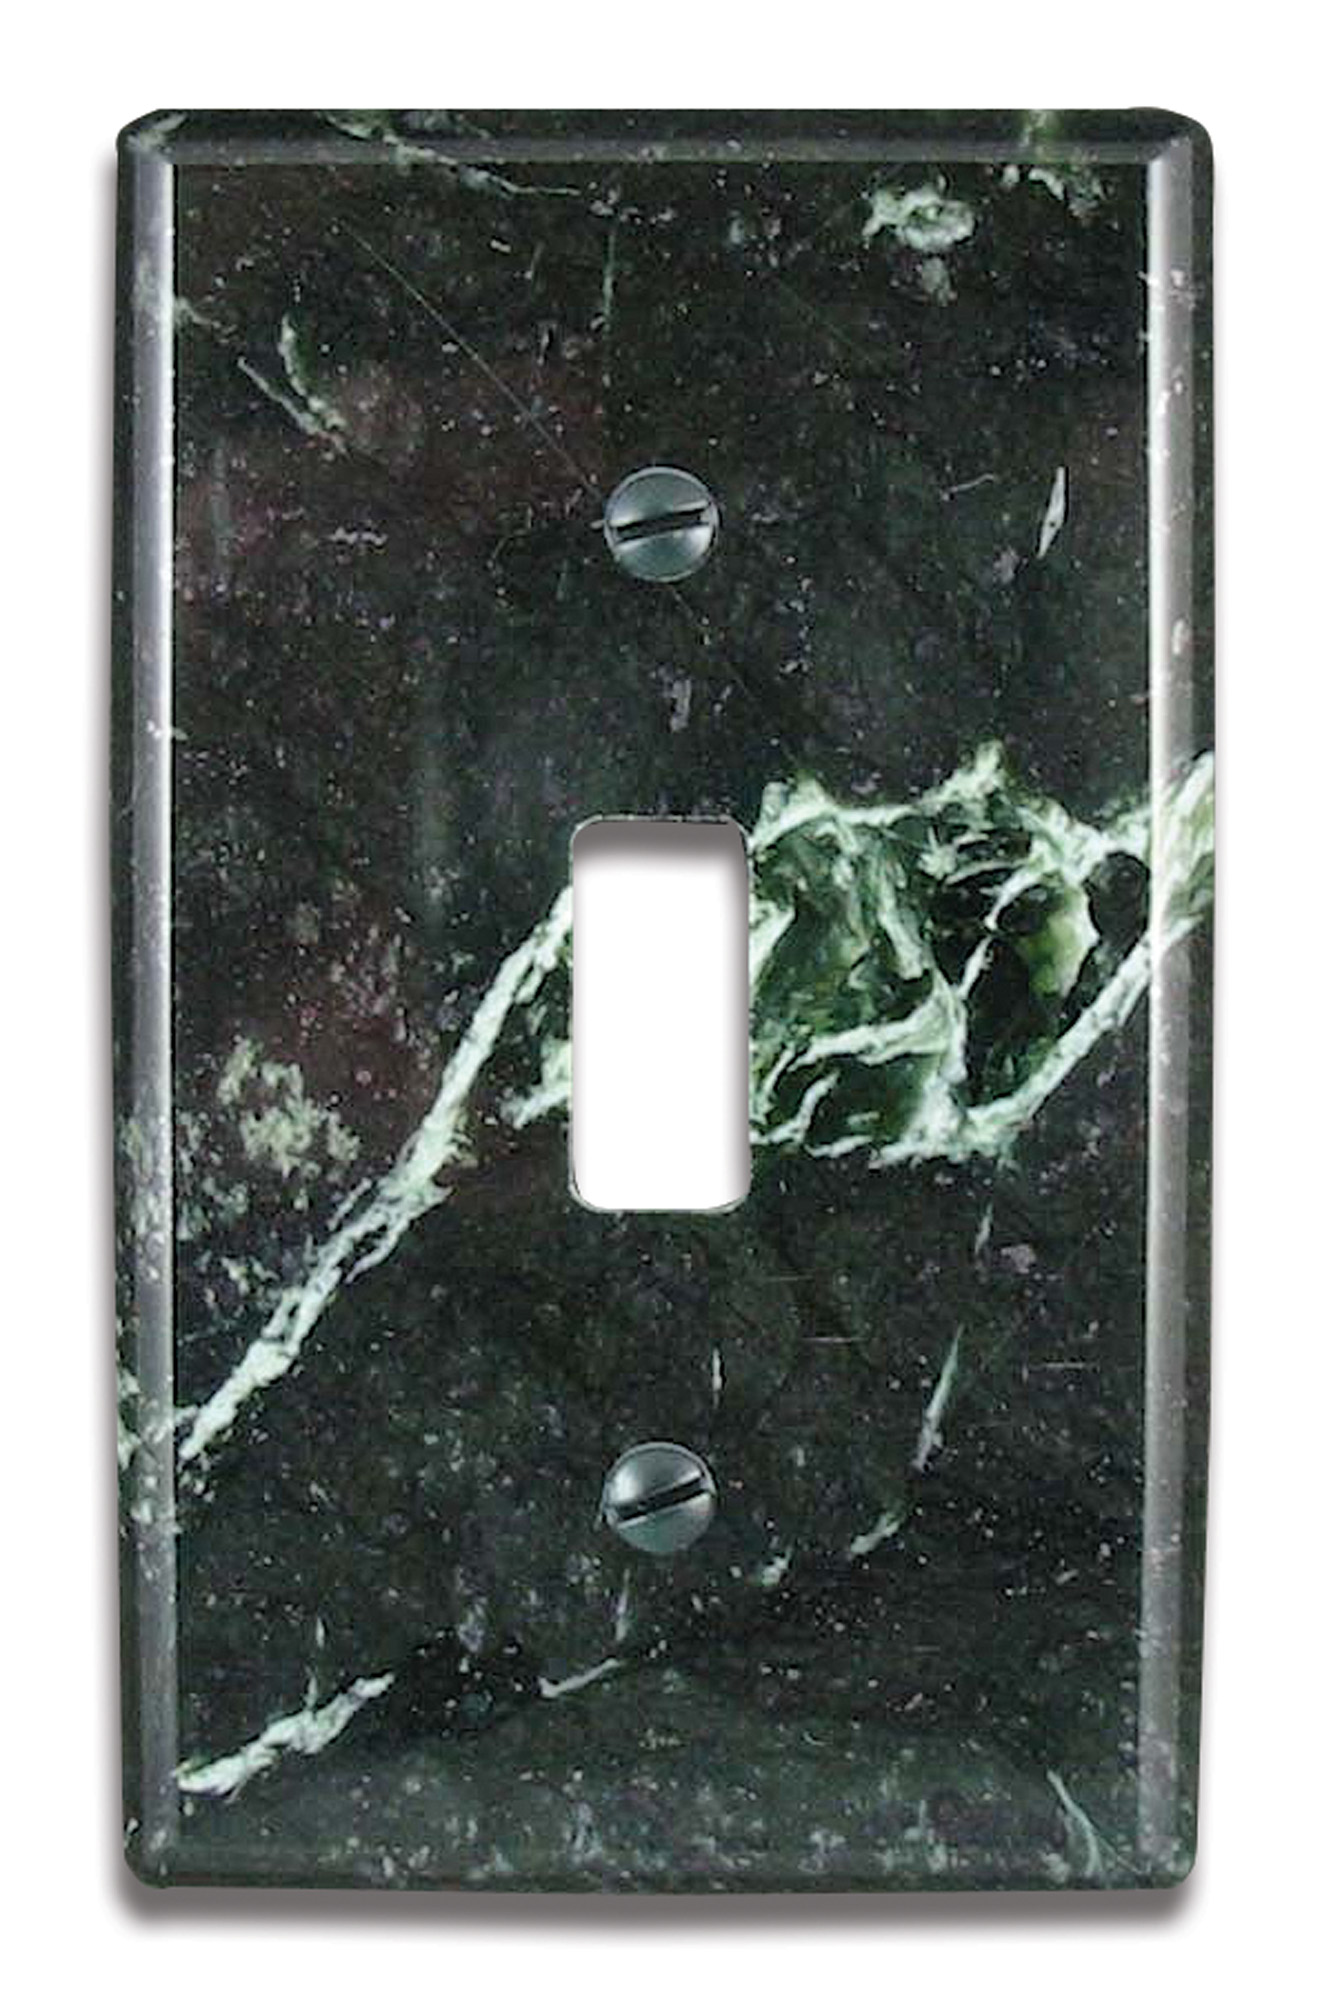 5_HIRES_stonewall marble_switch_gn